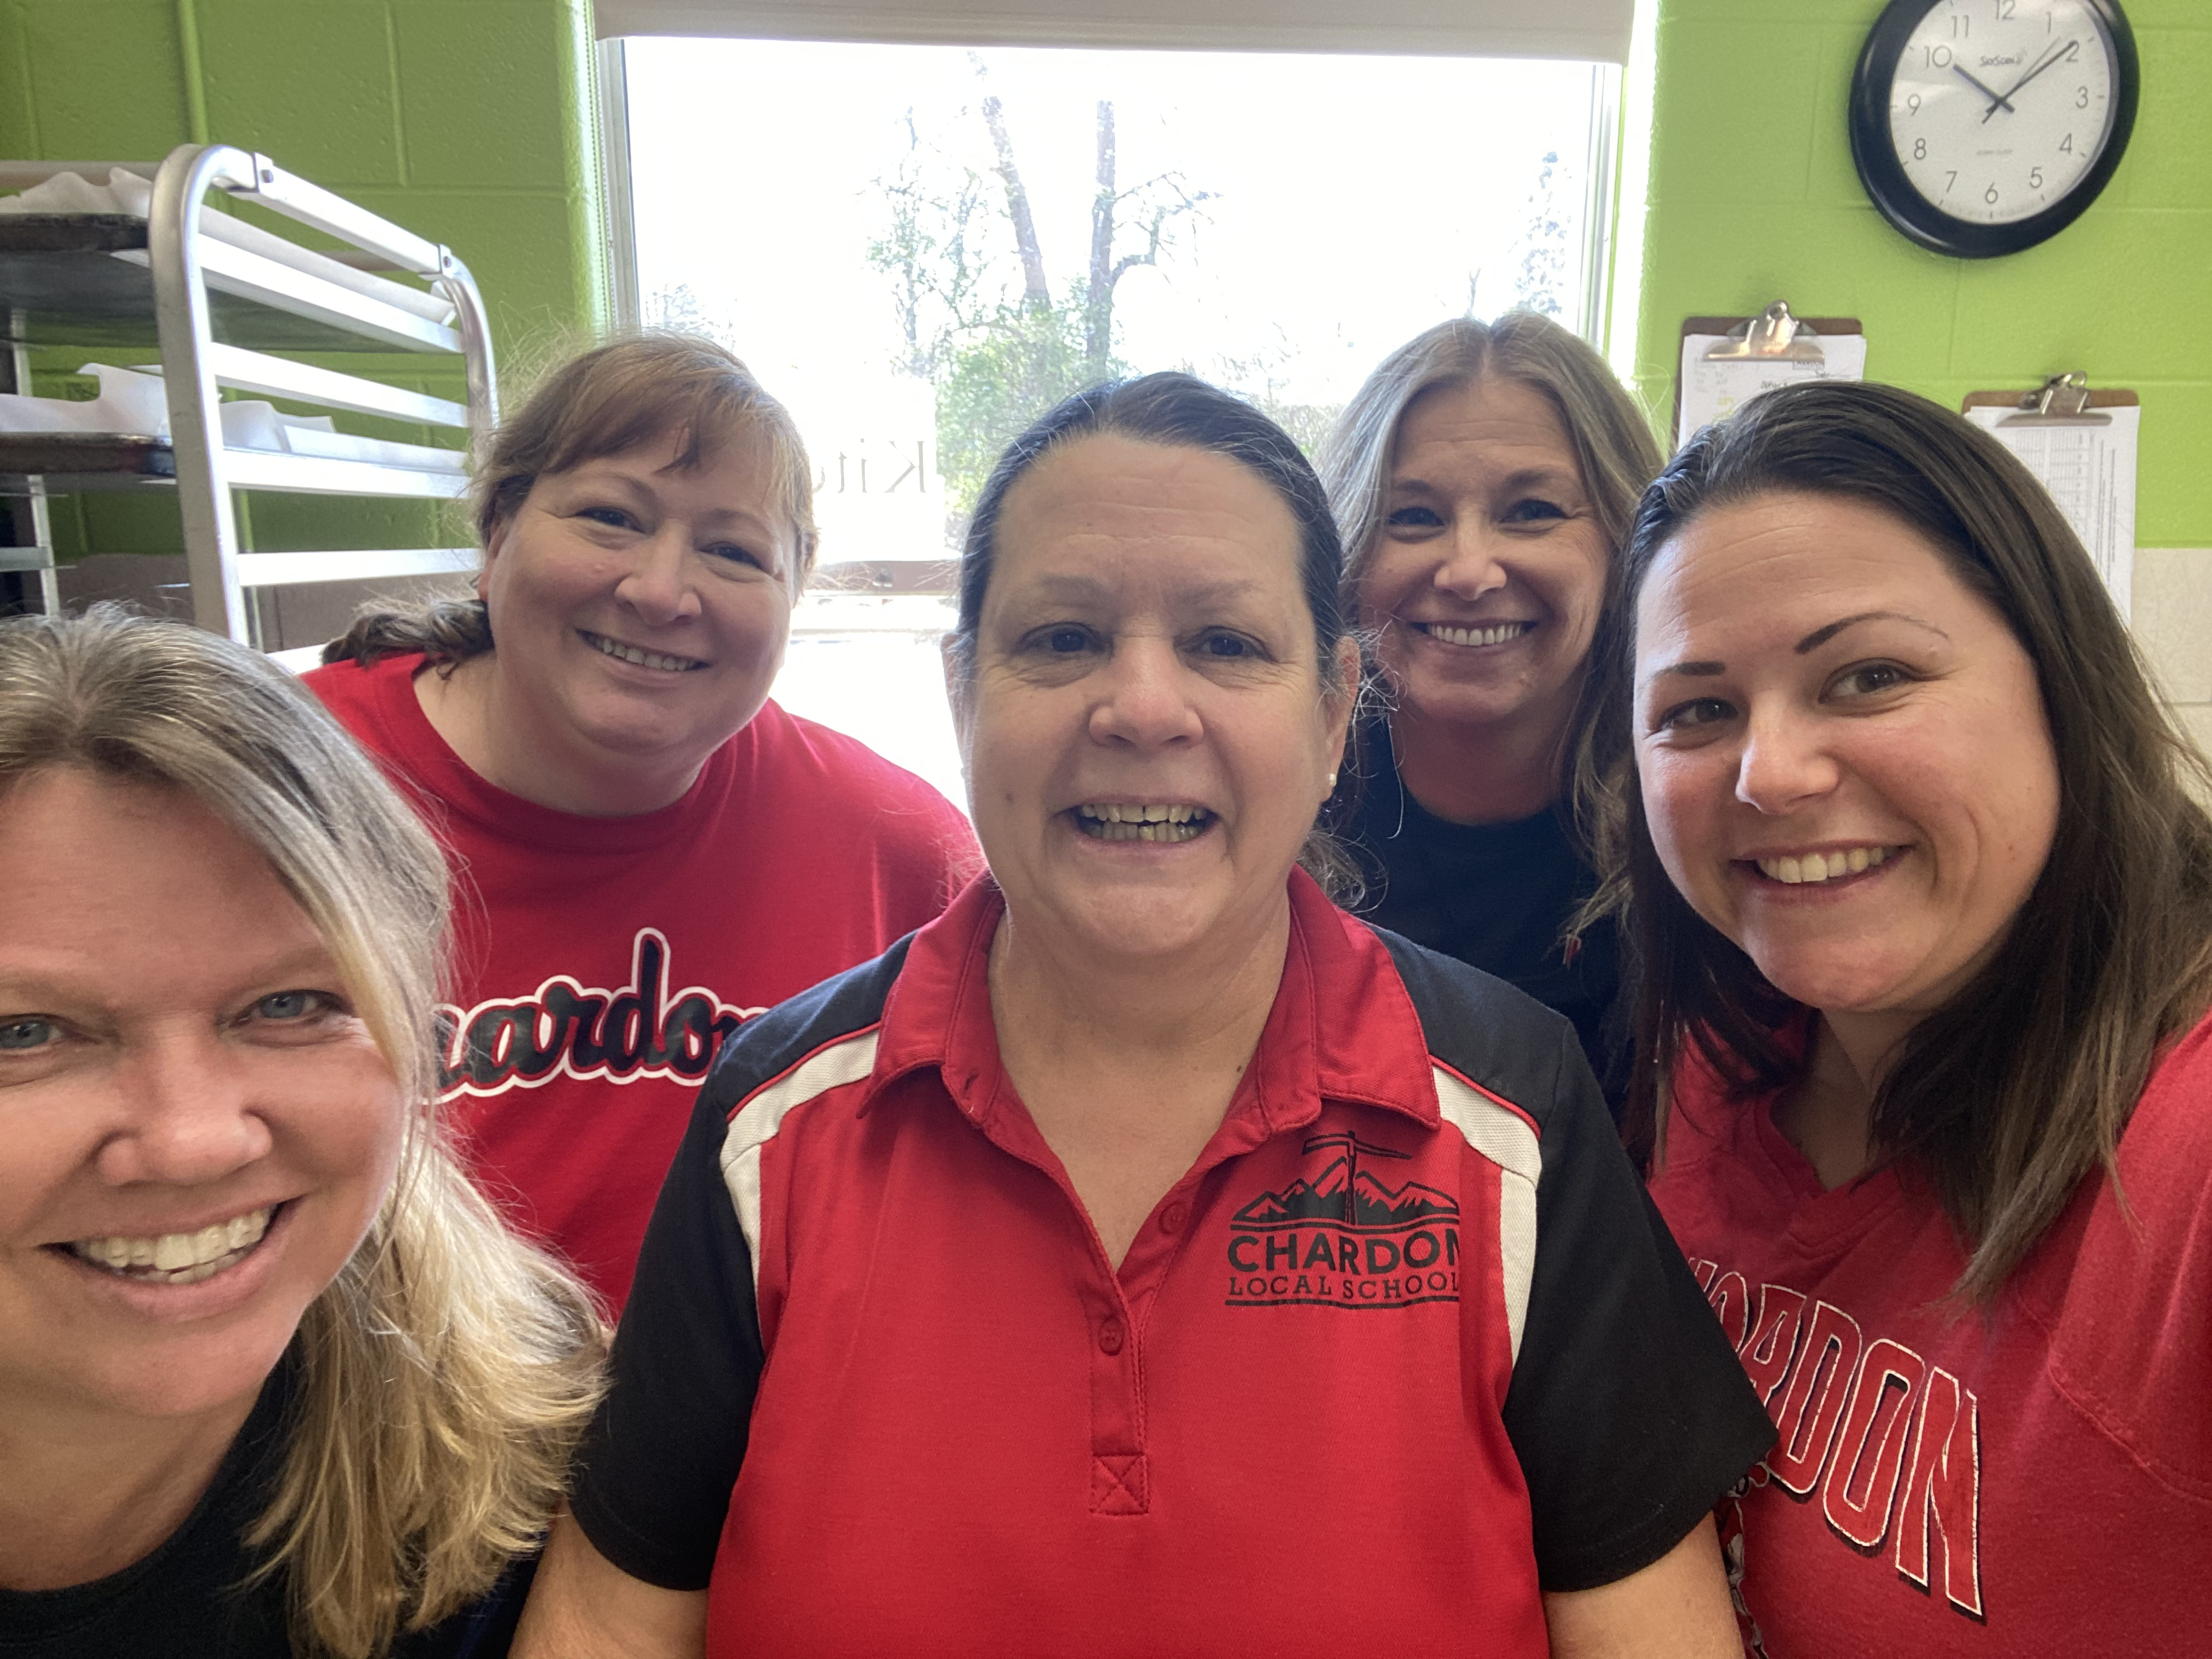 Group photo of 5 smiling Chardon Middle School Food Service staff members